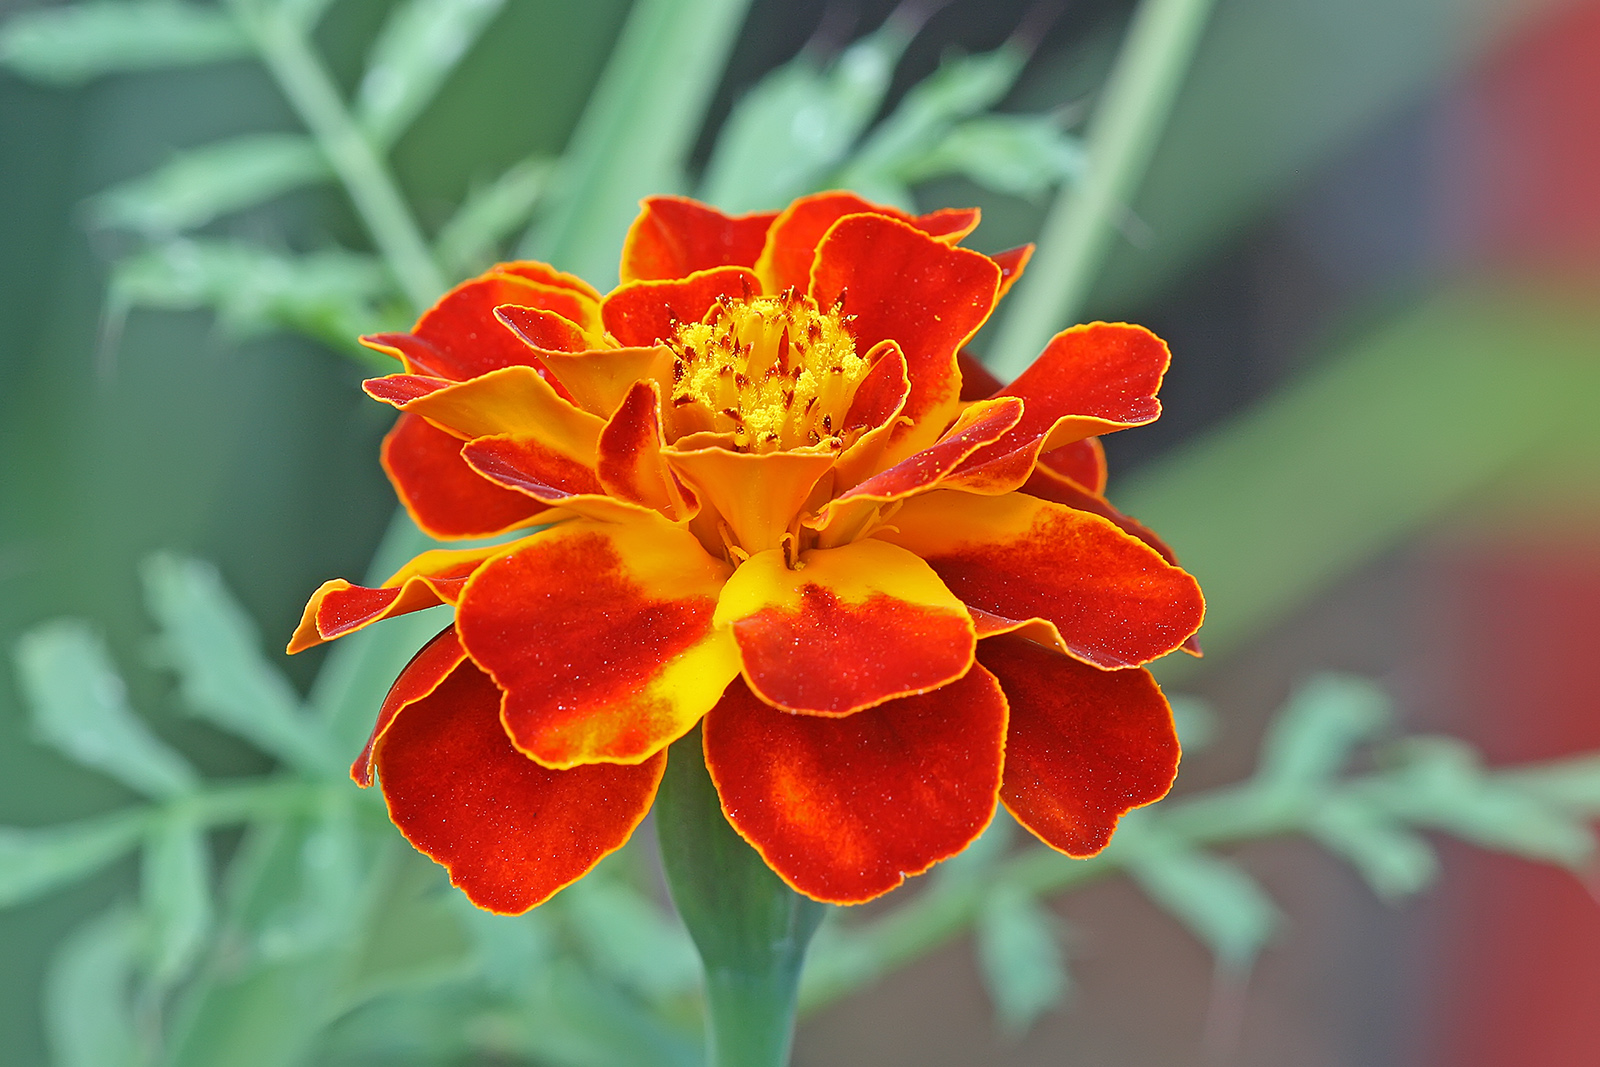 http://upload.wikimedia.org/wikipedia/commons/e/e7/French_marigold_Tagetes_patula.jpg